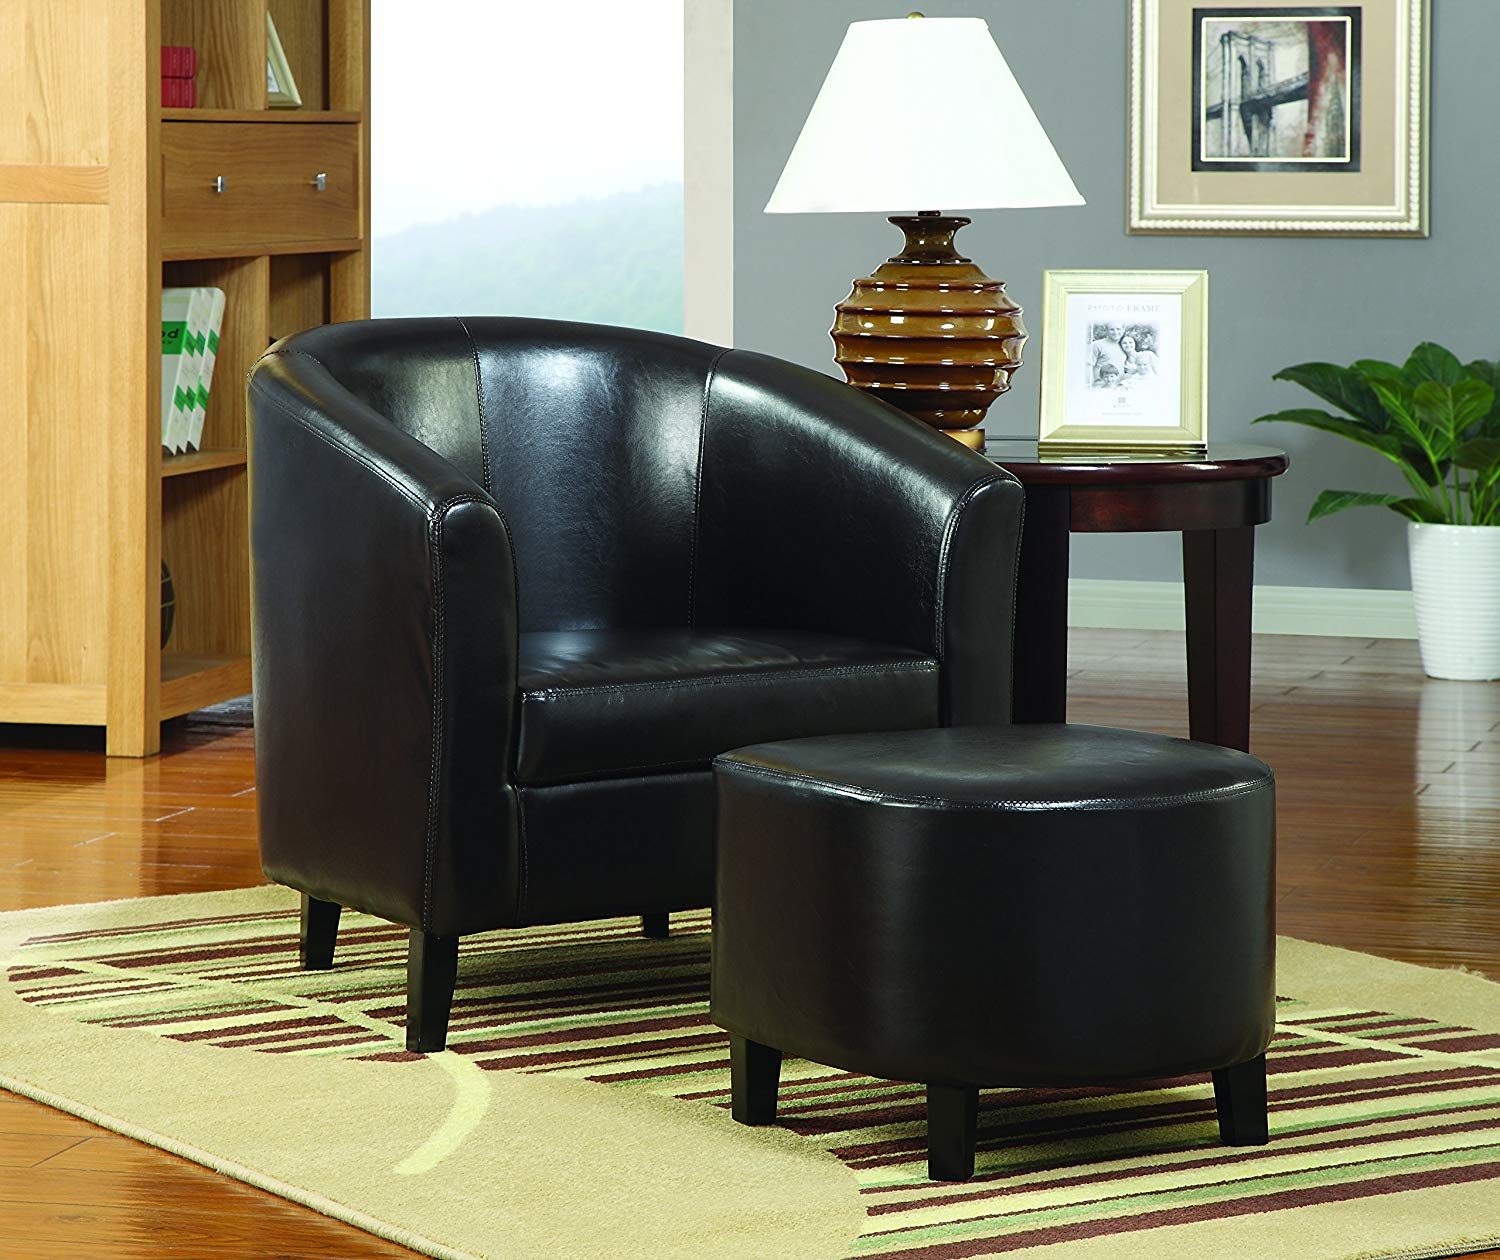 coaster home furnishings barrel back accent chair with ave six piece fabric and table set ott dark brown black kitchen dining outdoor coffee cover wine shelf pottery barn frog